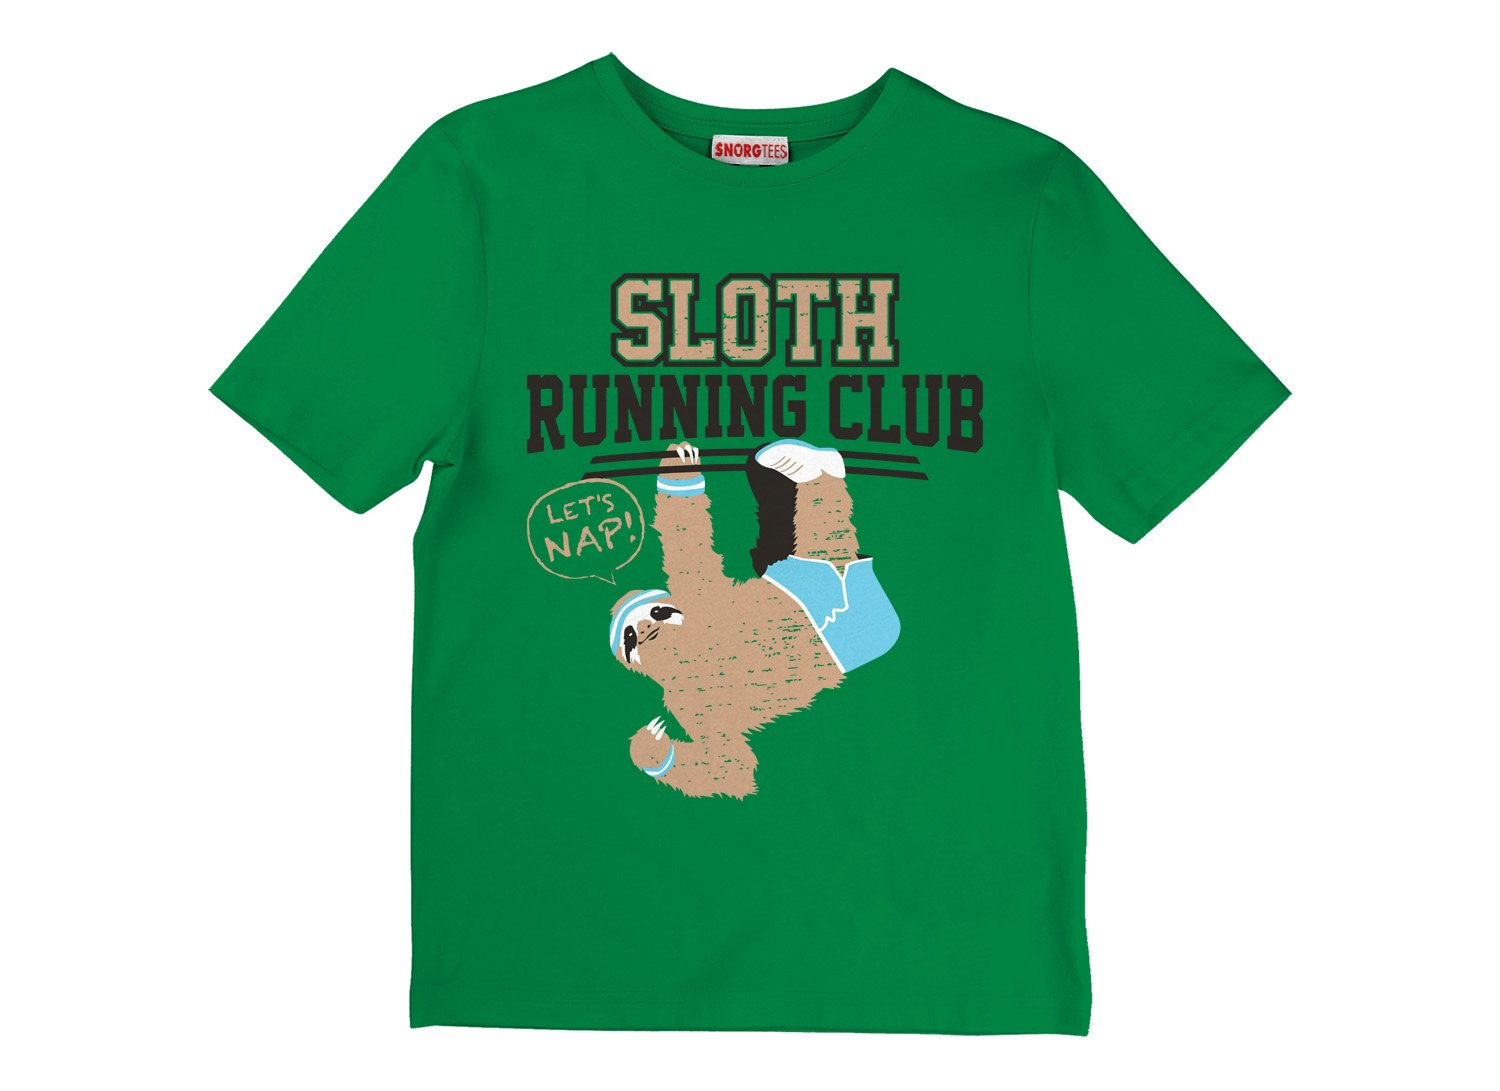 Sloth Running Club on Kids T-Shirt